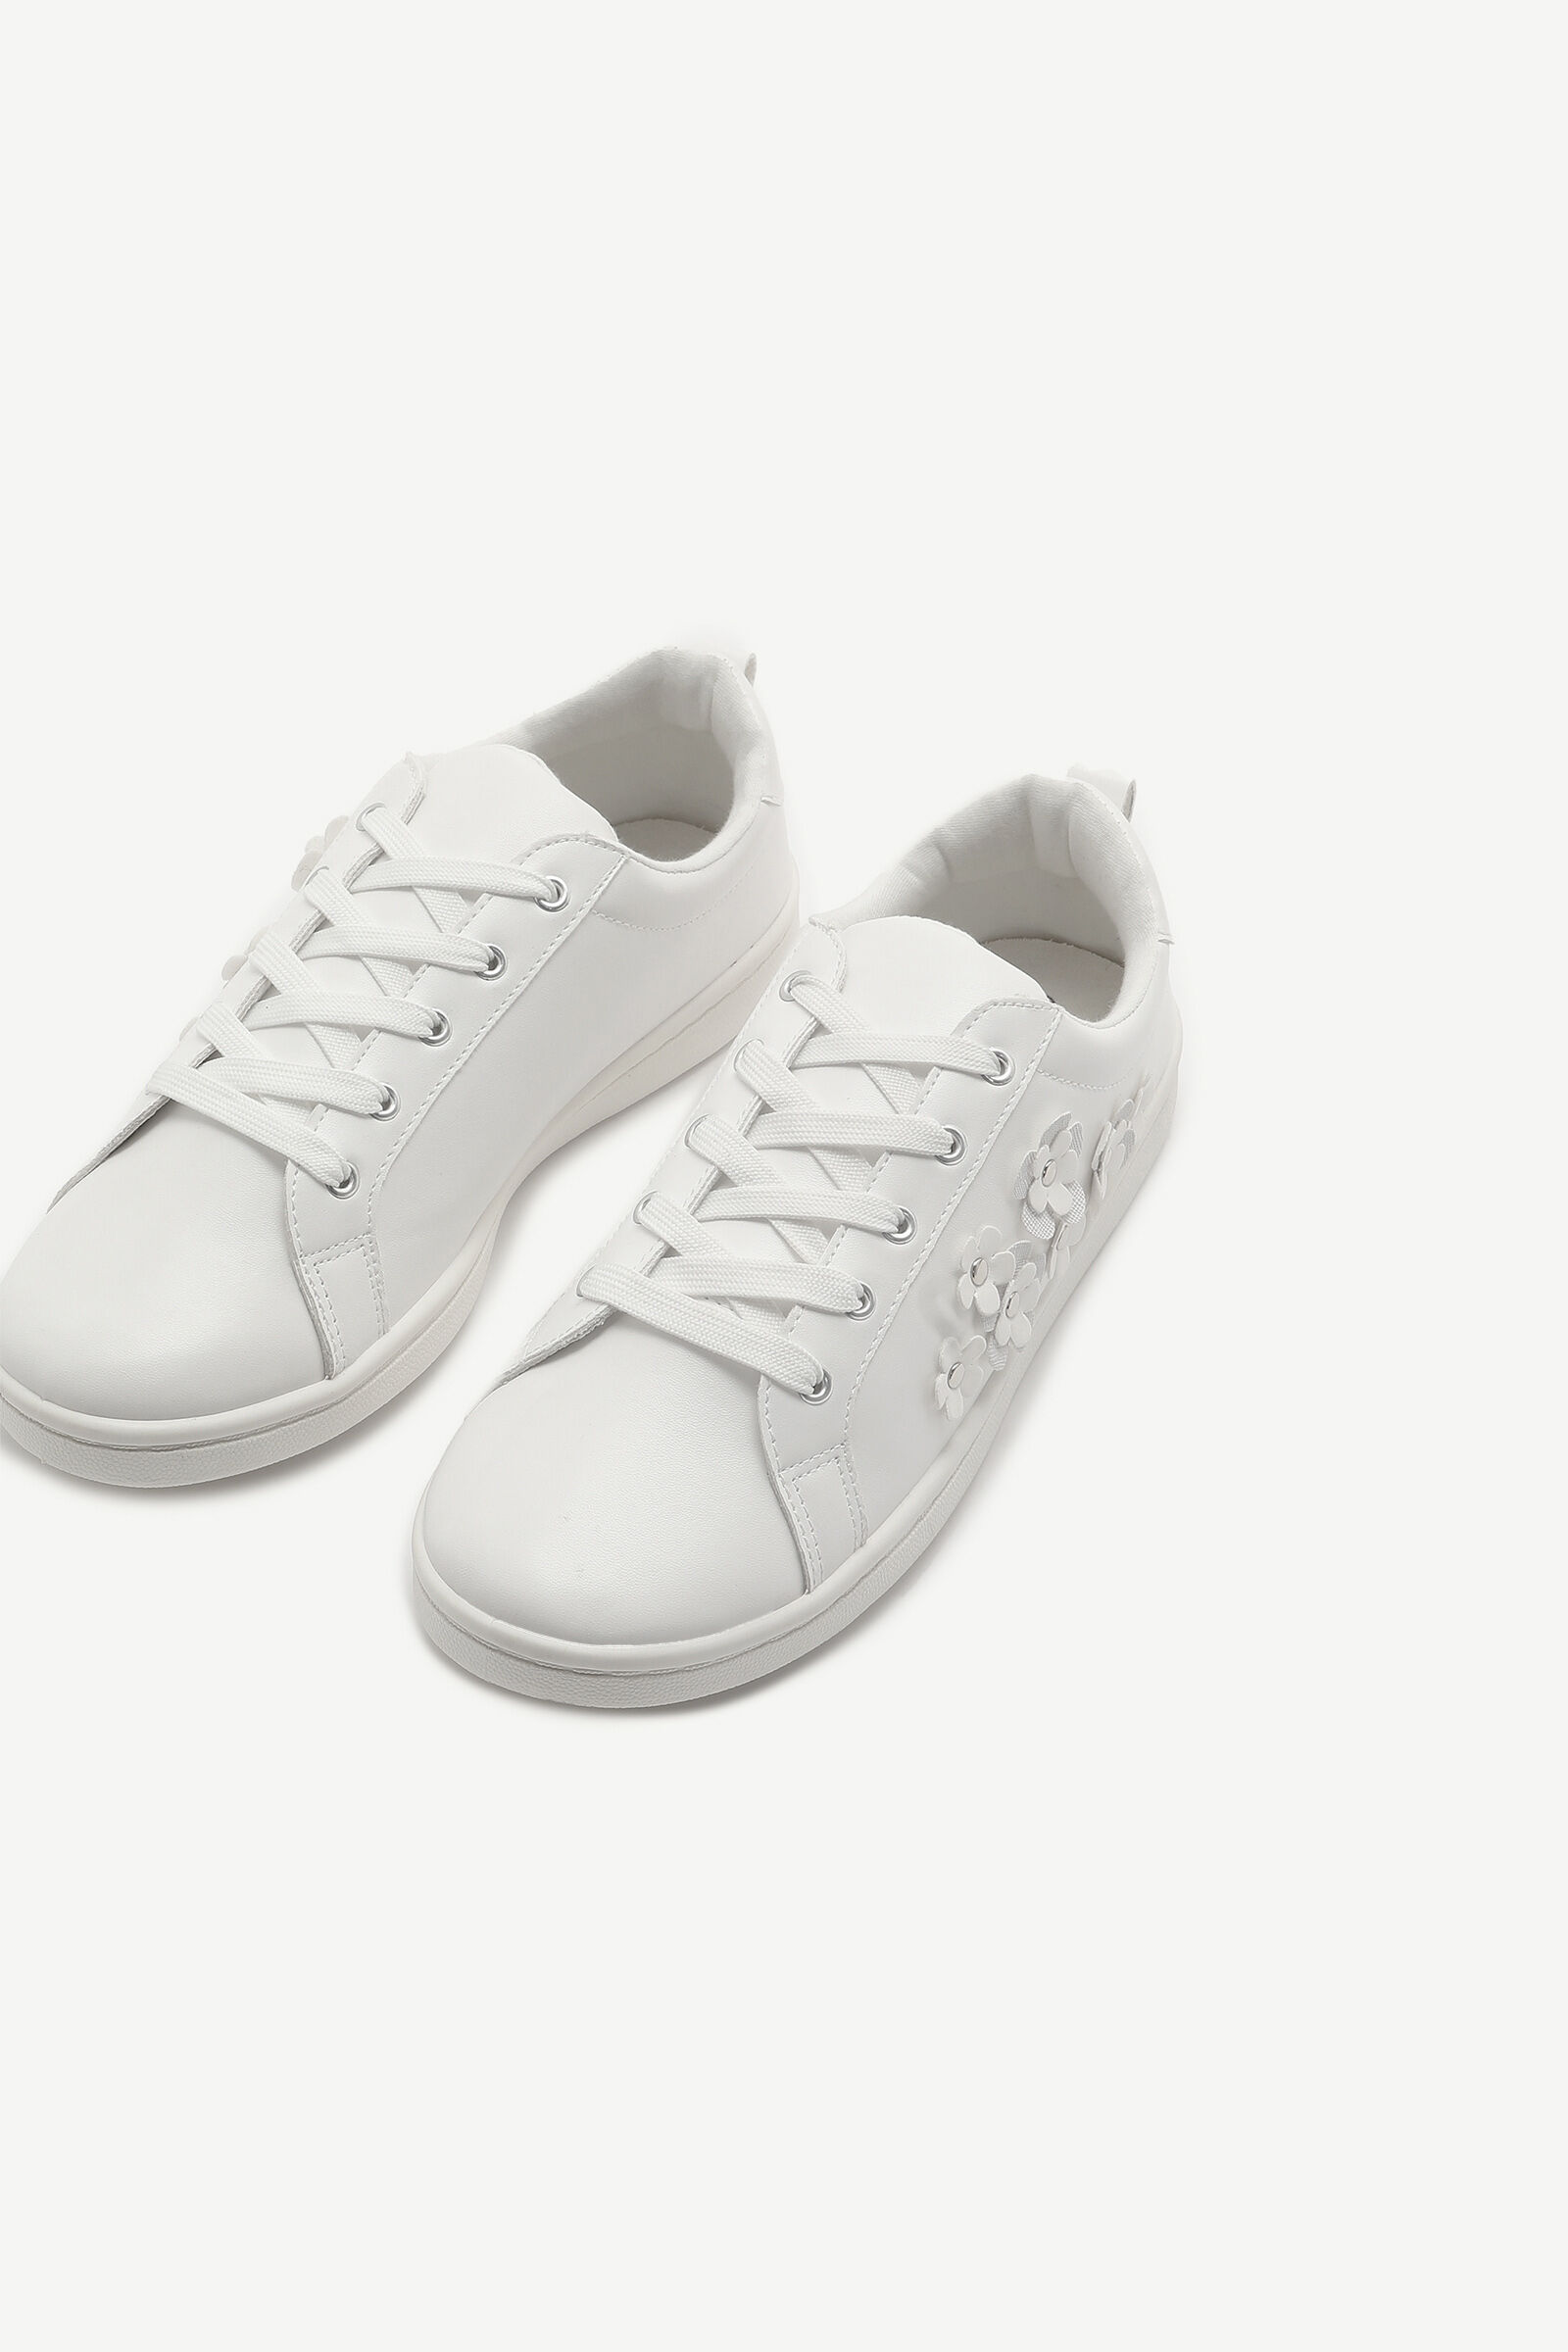 Floral Faux Leather Sneakers - Shoes